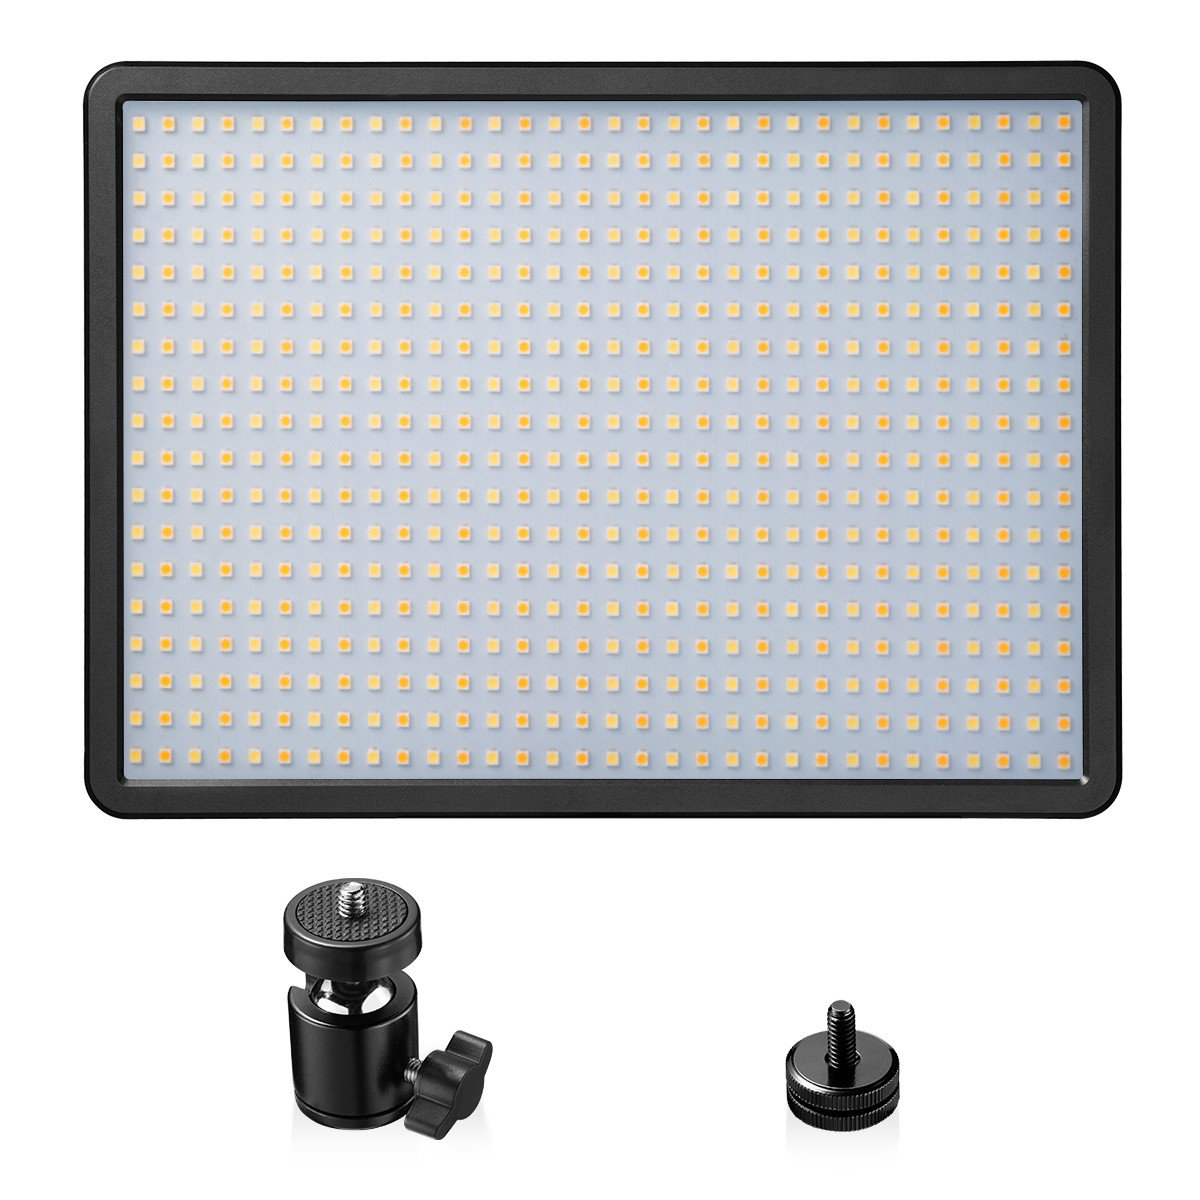 LED Video Light Panel, Powerextra 576 Beads 42W Bi-Color Dimmable Video Lamp Adjustable Color Temperature 3000K-6000K for Studio, Youtube, Photography, Video Shooting